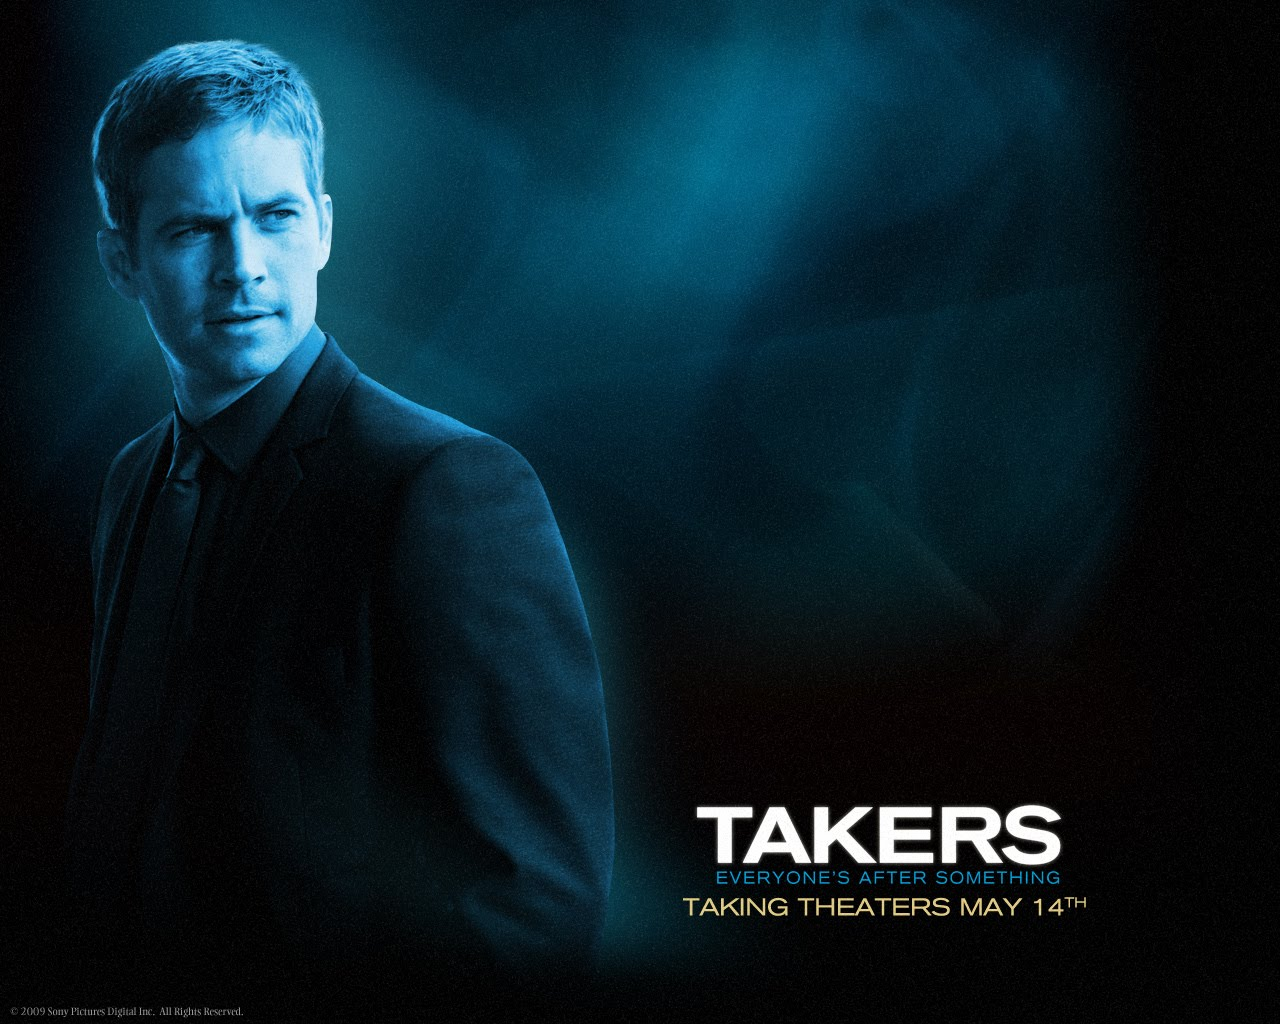 http://4.bp.blogspot.com/_LyVK95h-uys/TNYvmQSK-HI/AAAAAAAAAYY/Tw0R7ujYTU8/s1600/Paul_Walker_in_Takers_Wallpaper_7_1280.jpg